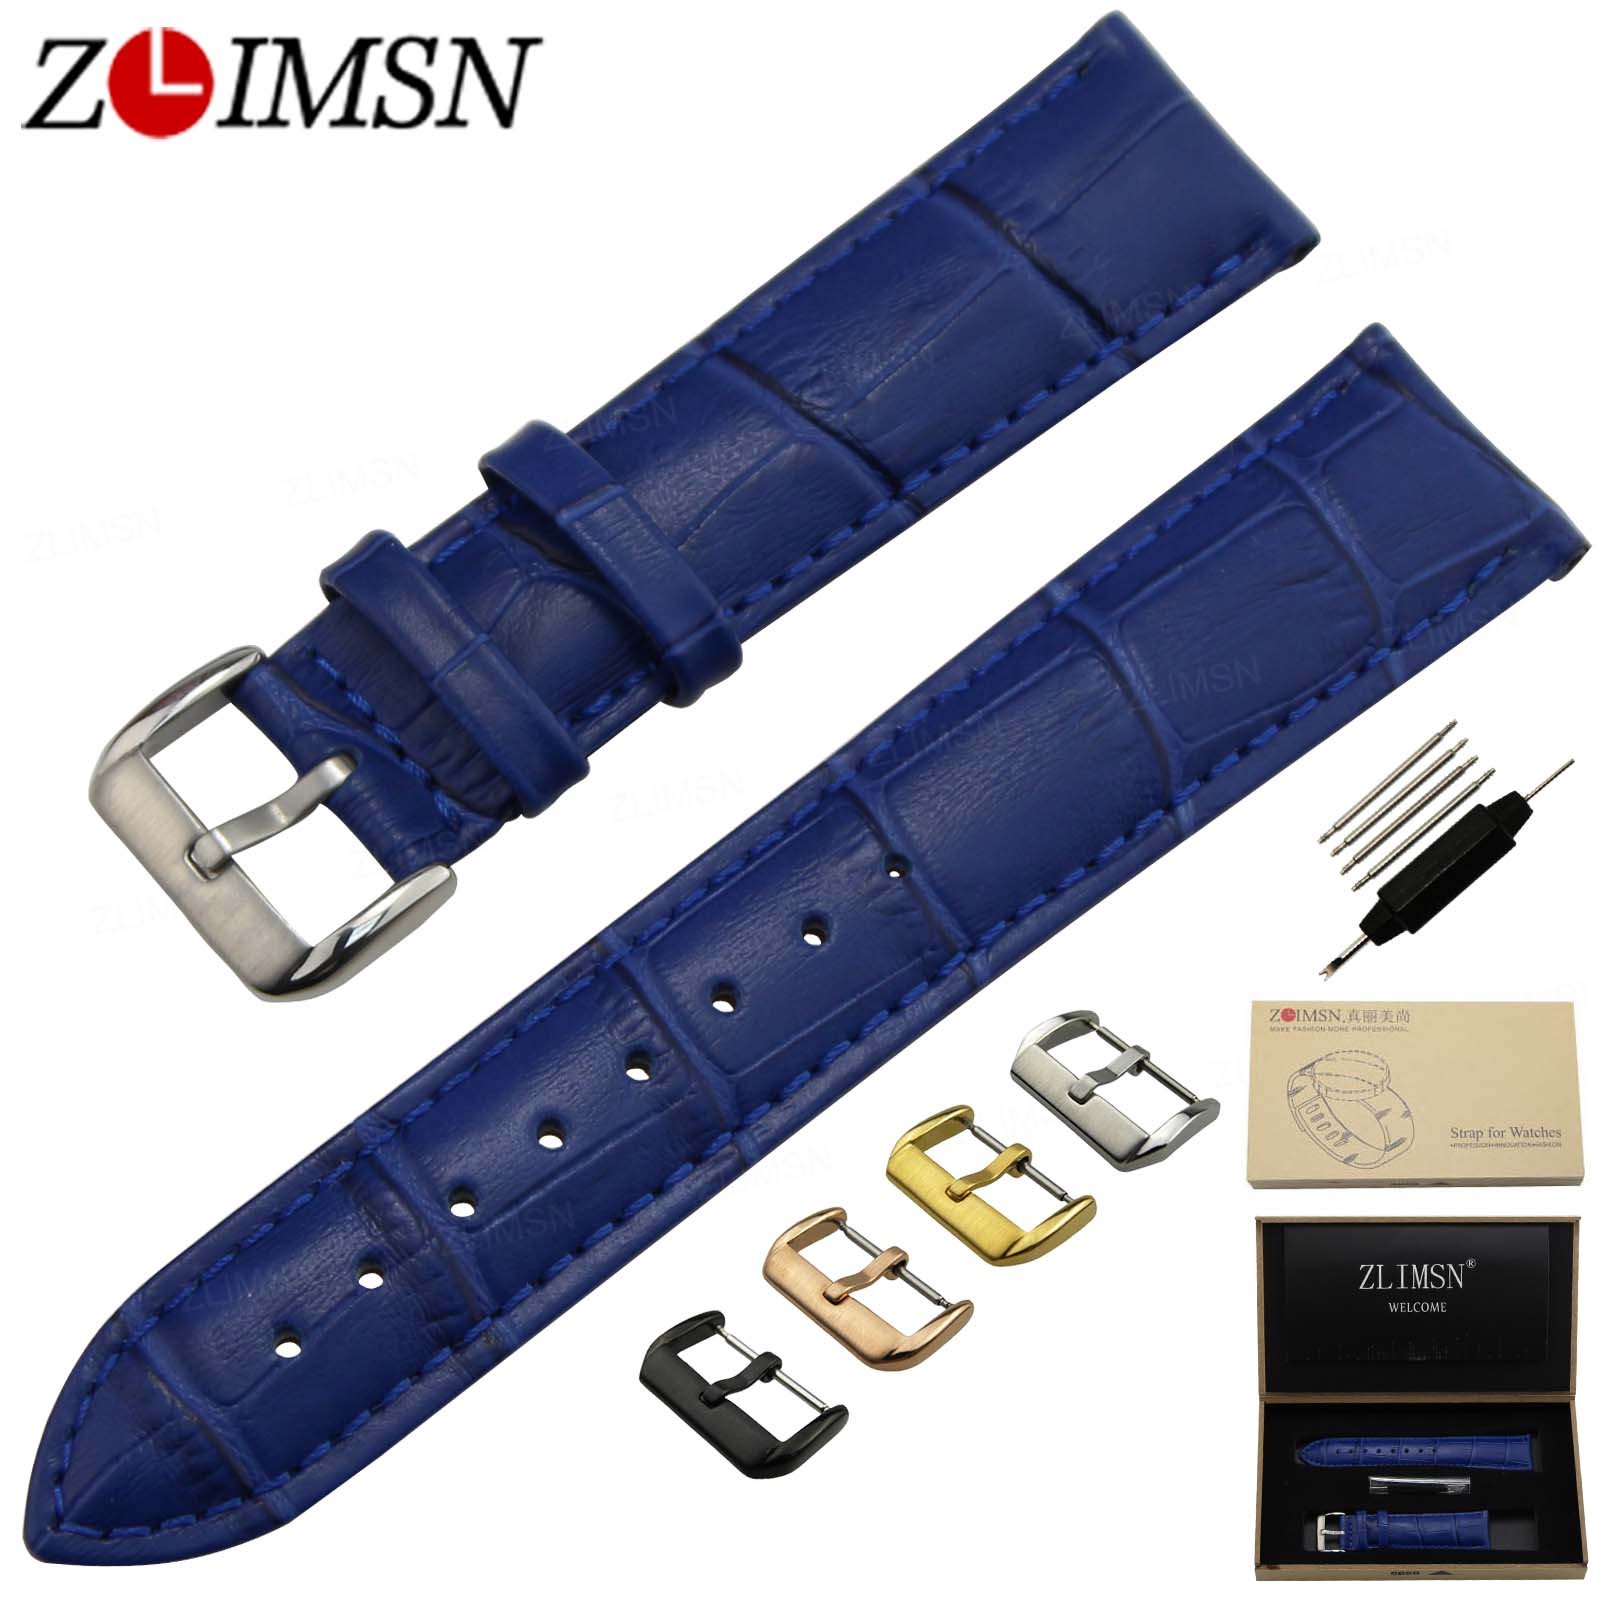 ZLIMSN Genuine Leather Watch Band Stainless Steel Pin Buckle Blue Crocodile Grain Strap 12 14 16 18 20mm Relogio Masculino 2017 new fashion replace watch band 22mm 24mm mens womens dark blue 100% genuine crocodile grain leather watch strap band bracelets